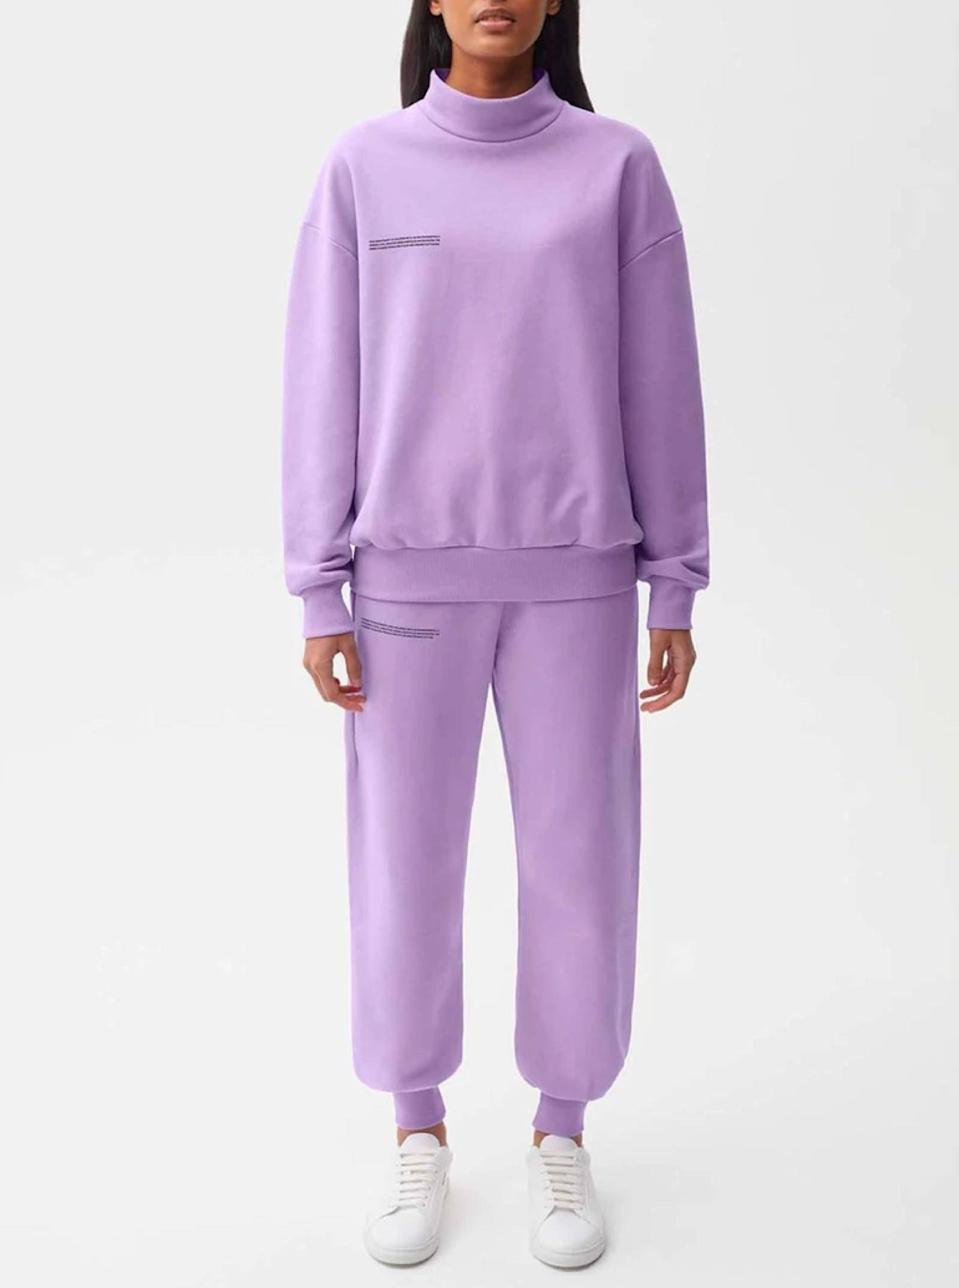 """$120, Pangaia. <a href=""""https://thepangaia.com/products/womens-cuffed-track-pants-orchid-purple"""" rel=""""nofollow noopener"""" target=""""_blank"""" data-ylk=""""slk:Get it now!"""" class=""""link rapid-noclick-resp"""">Get it now!</a>"""